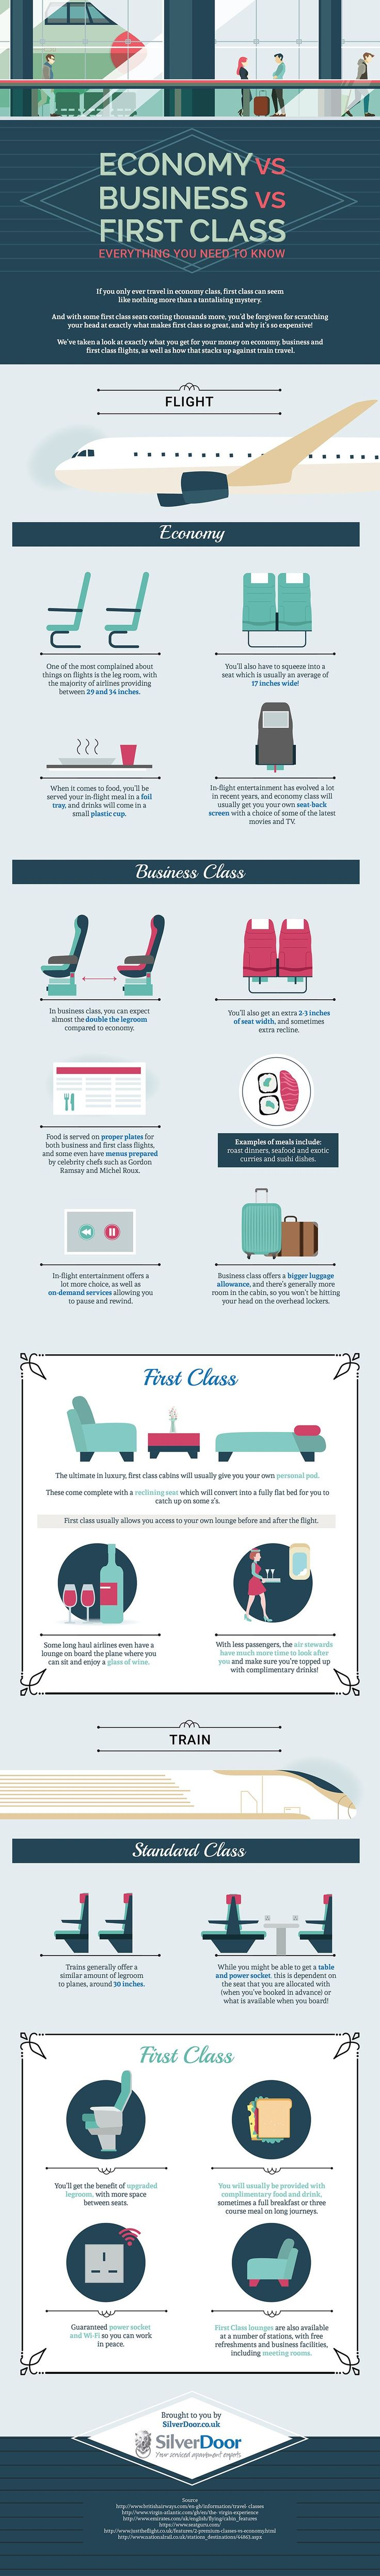 Economy vs Business vs First Class - Everything You Need To Know #Infographic #Travel